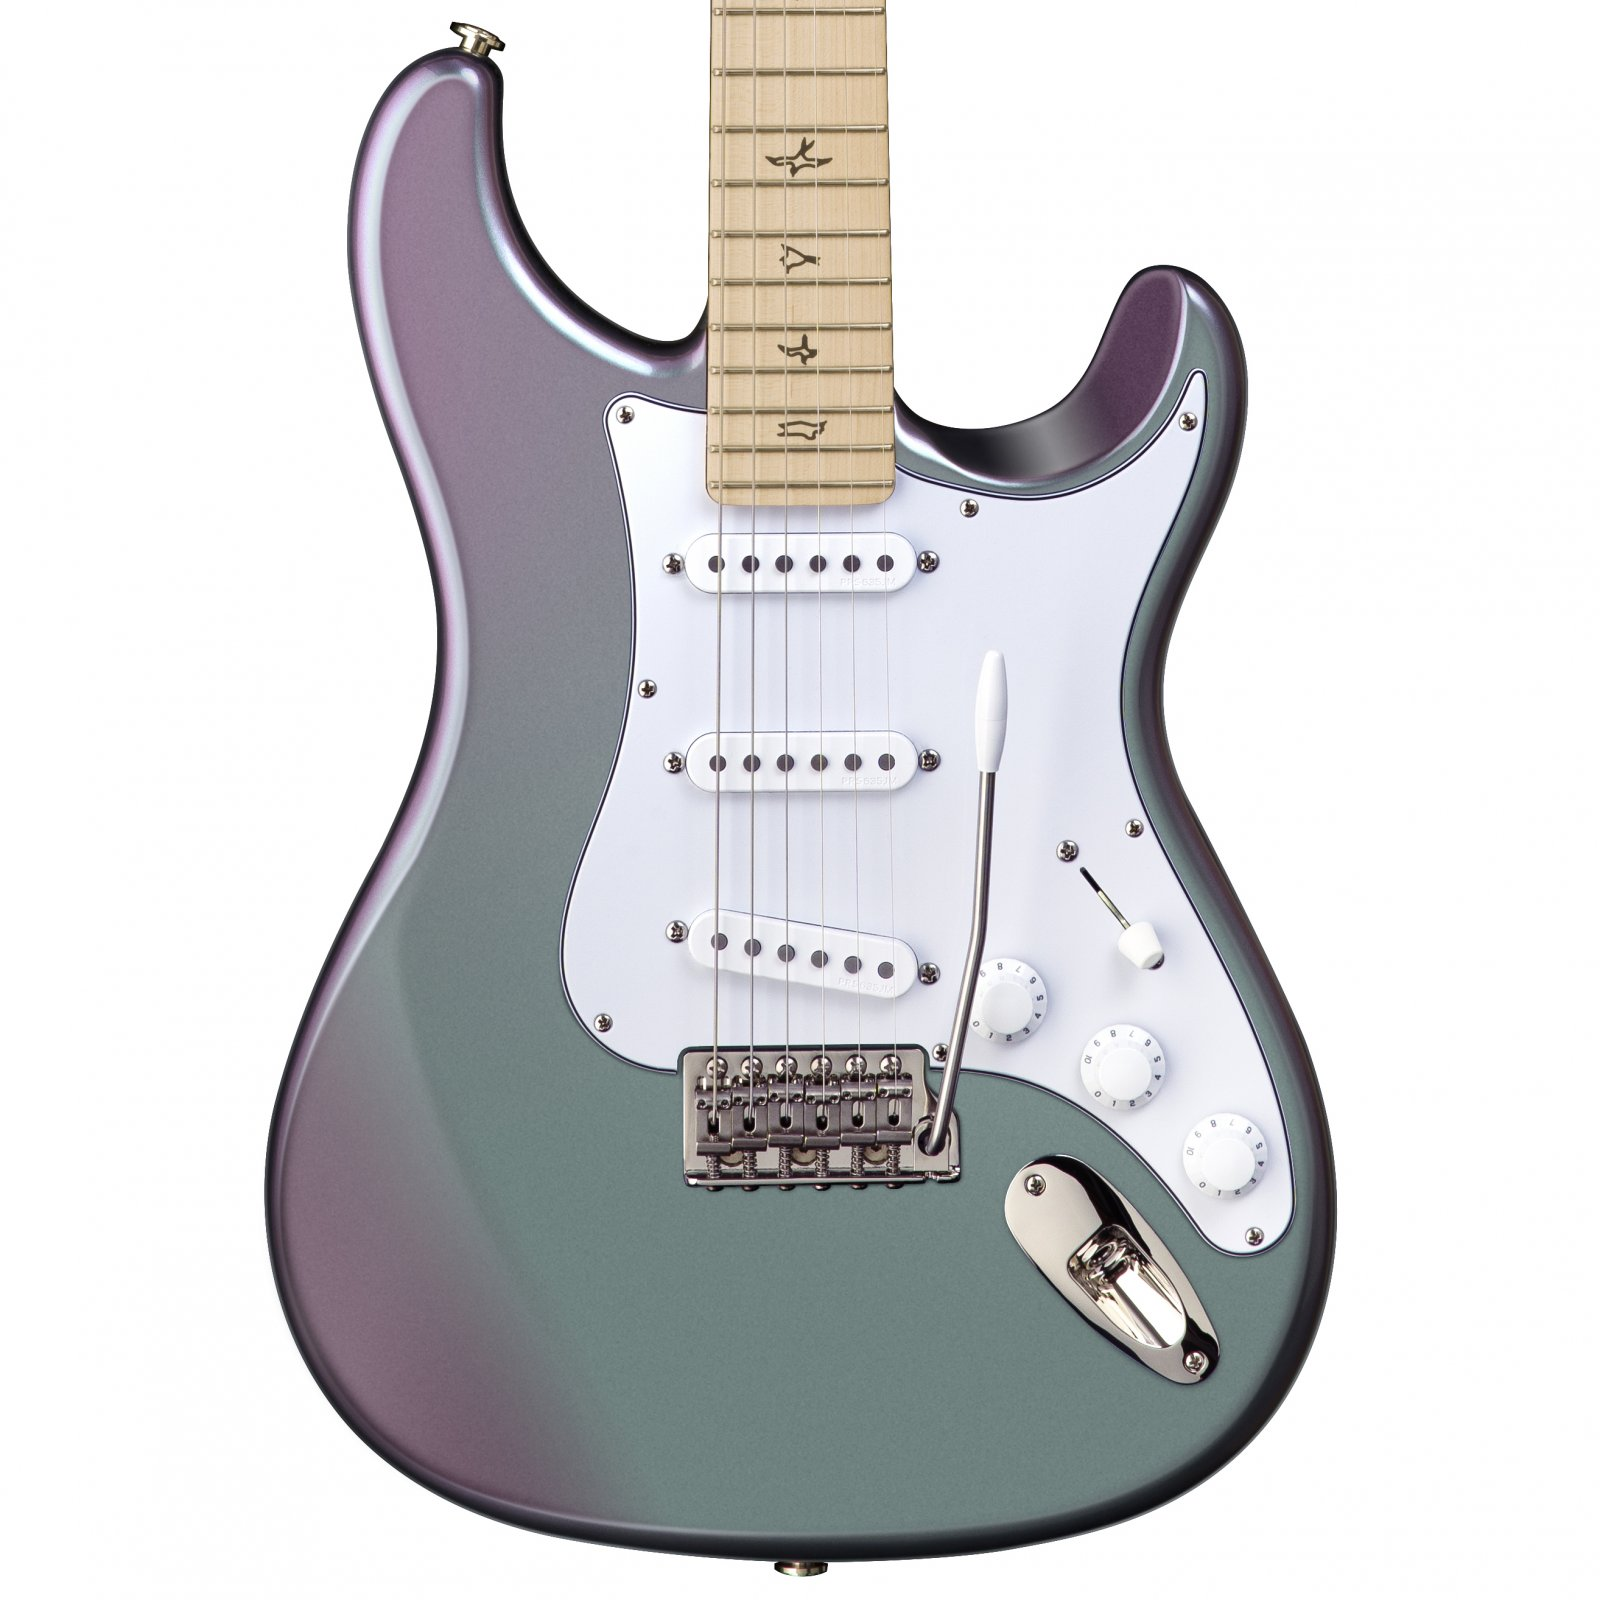 PRS Silver Sky Limited Edition - Maple Fingerboard, Lunar Ice Flip-Flop (COMING SOON)